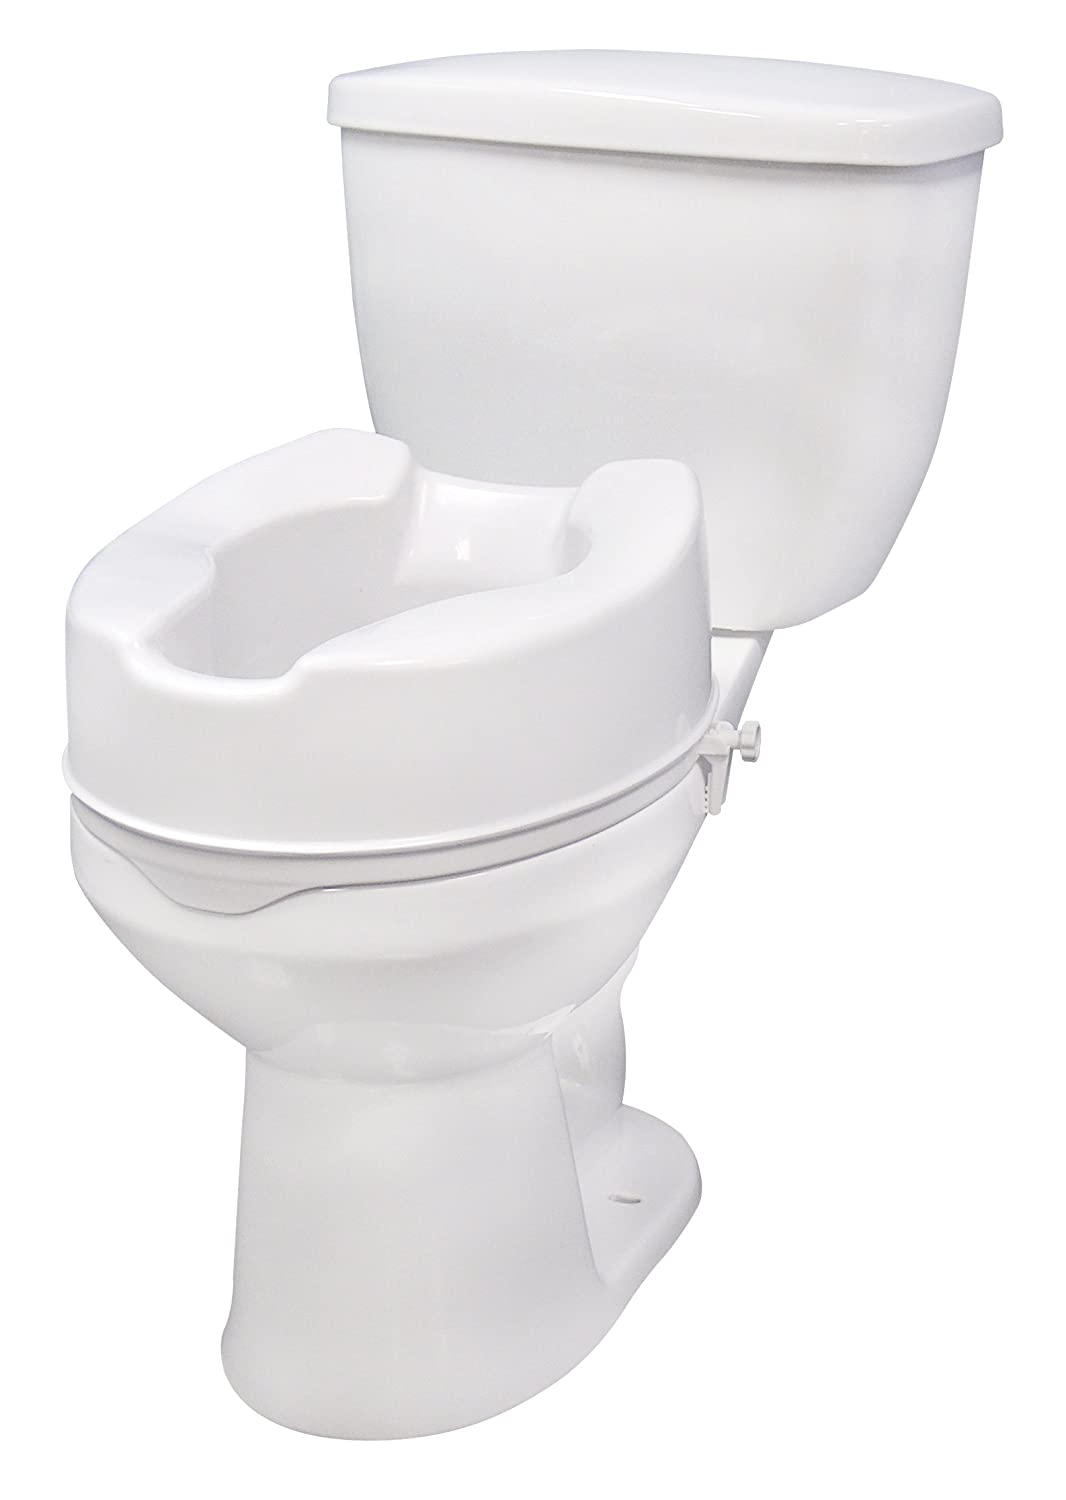 Amazon.com: Drive Medical Raised Toilet Seat with Lock, Standard ...